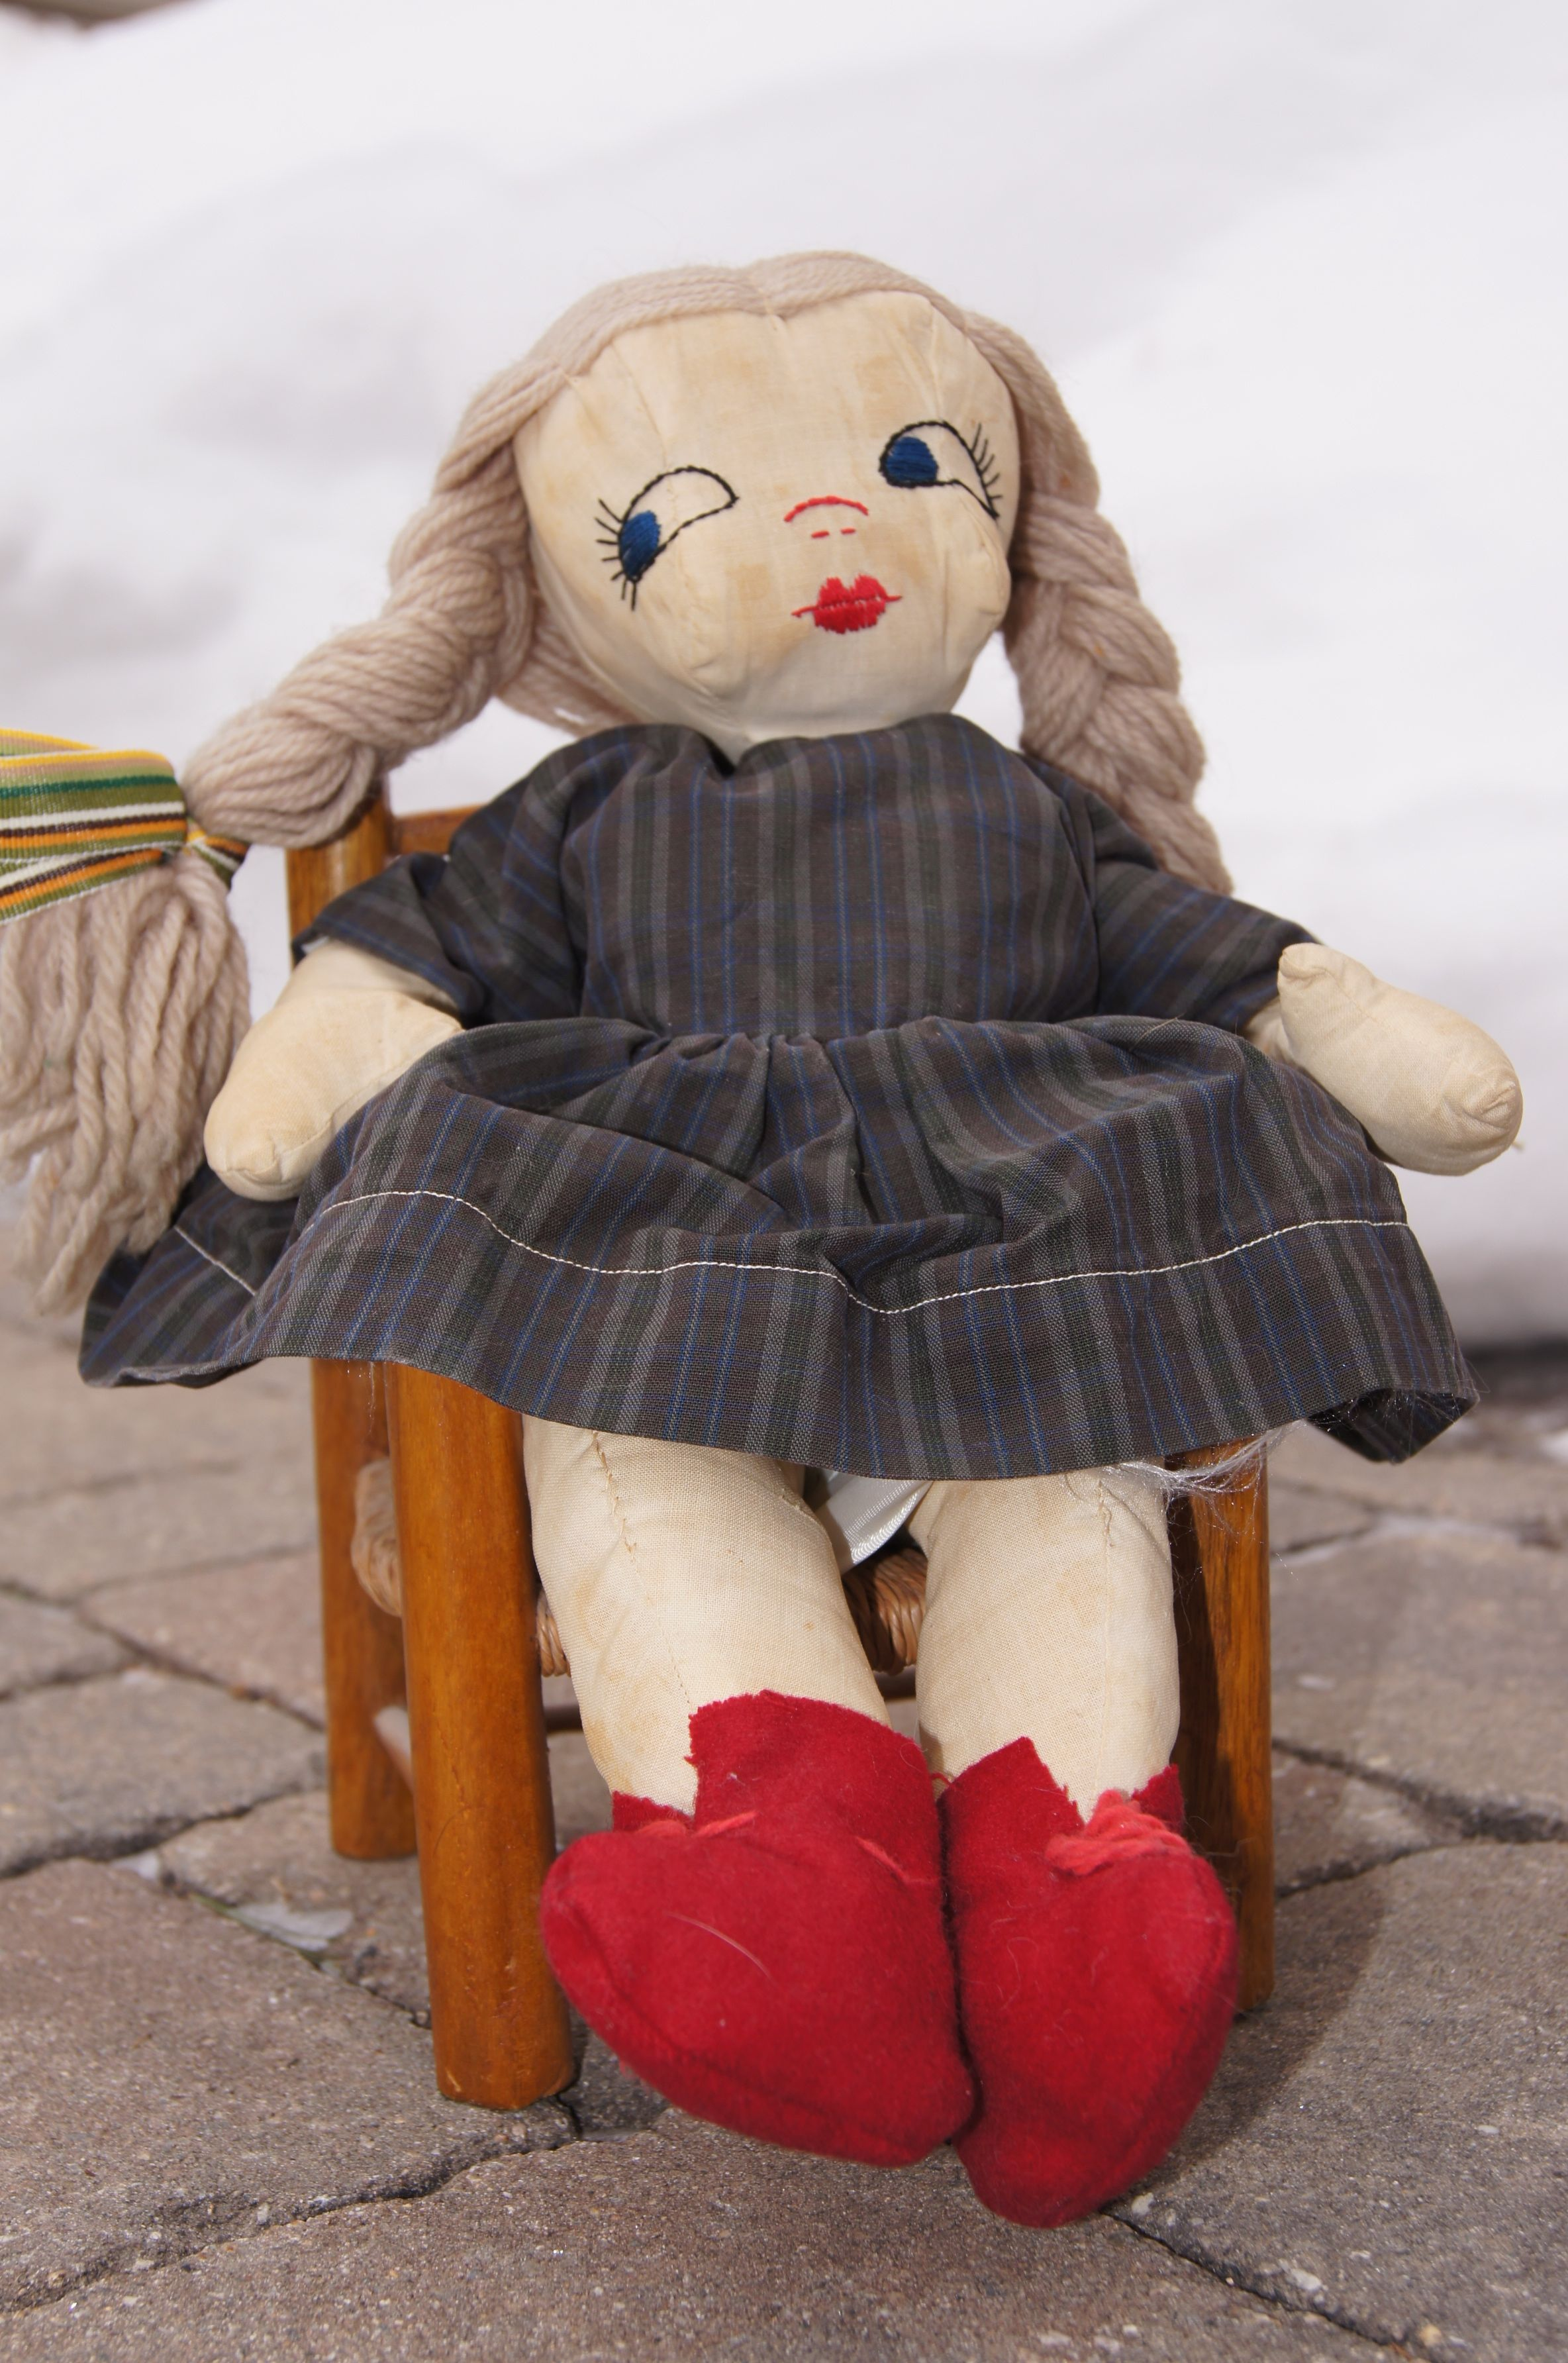 Doll purchased for me on the Blue Ridge Parkway in the 1960s